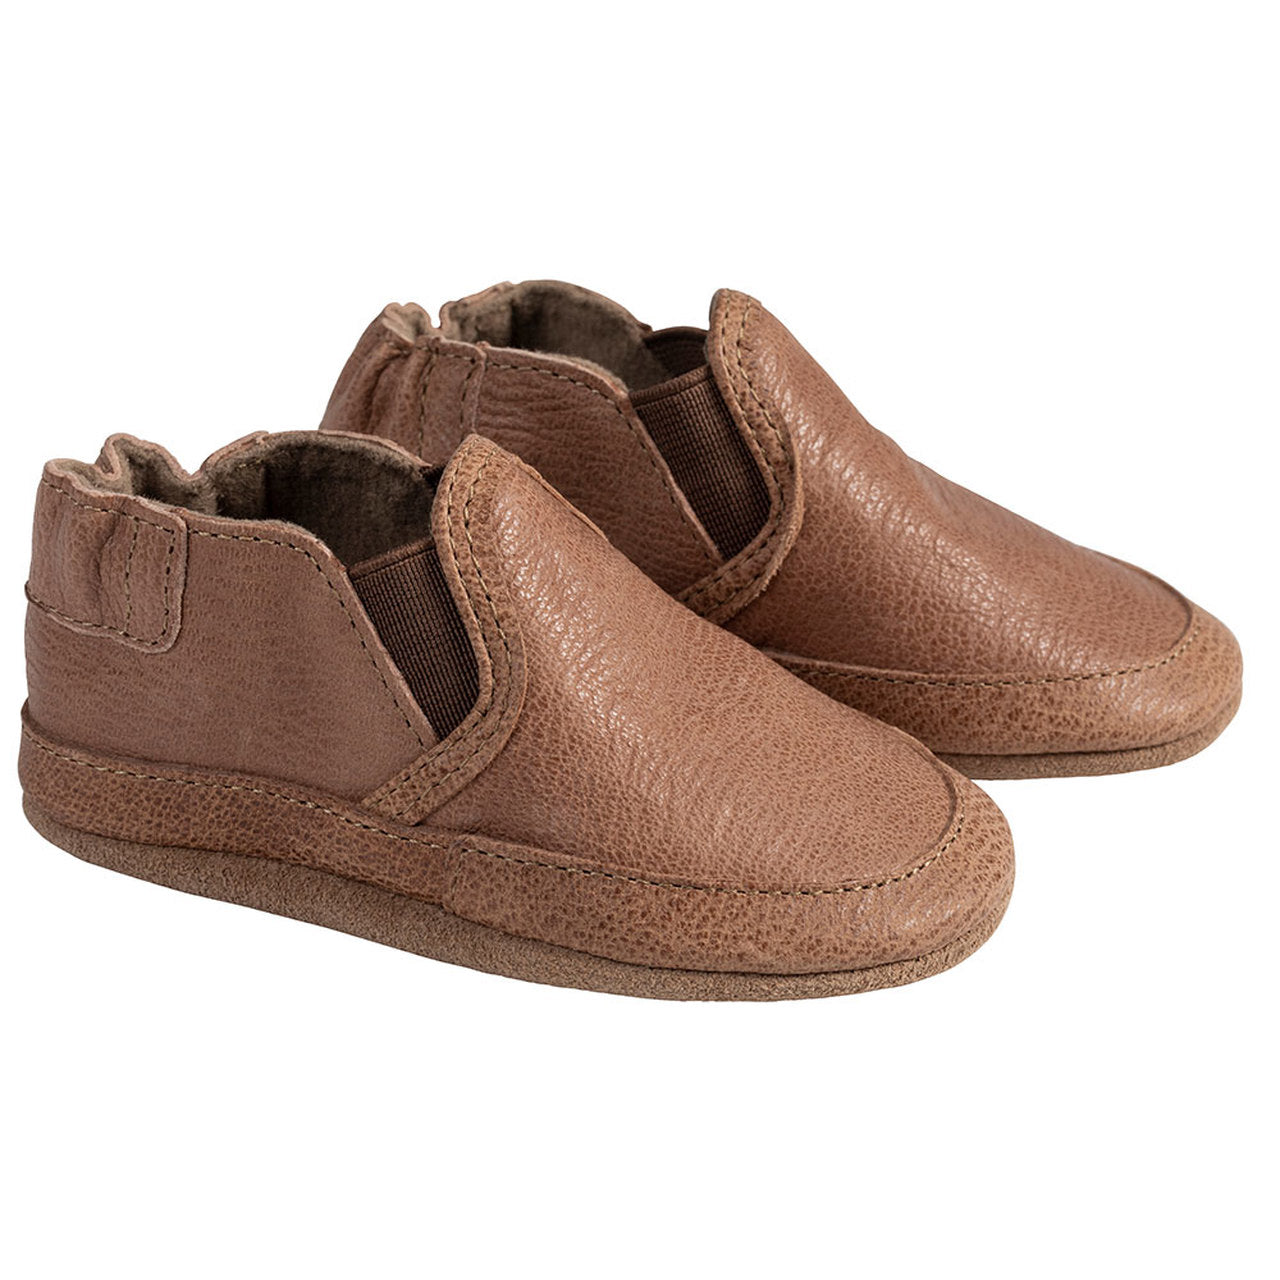 Robeez Soft Sole Shoes Camel